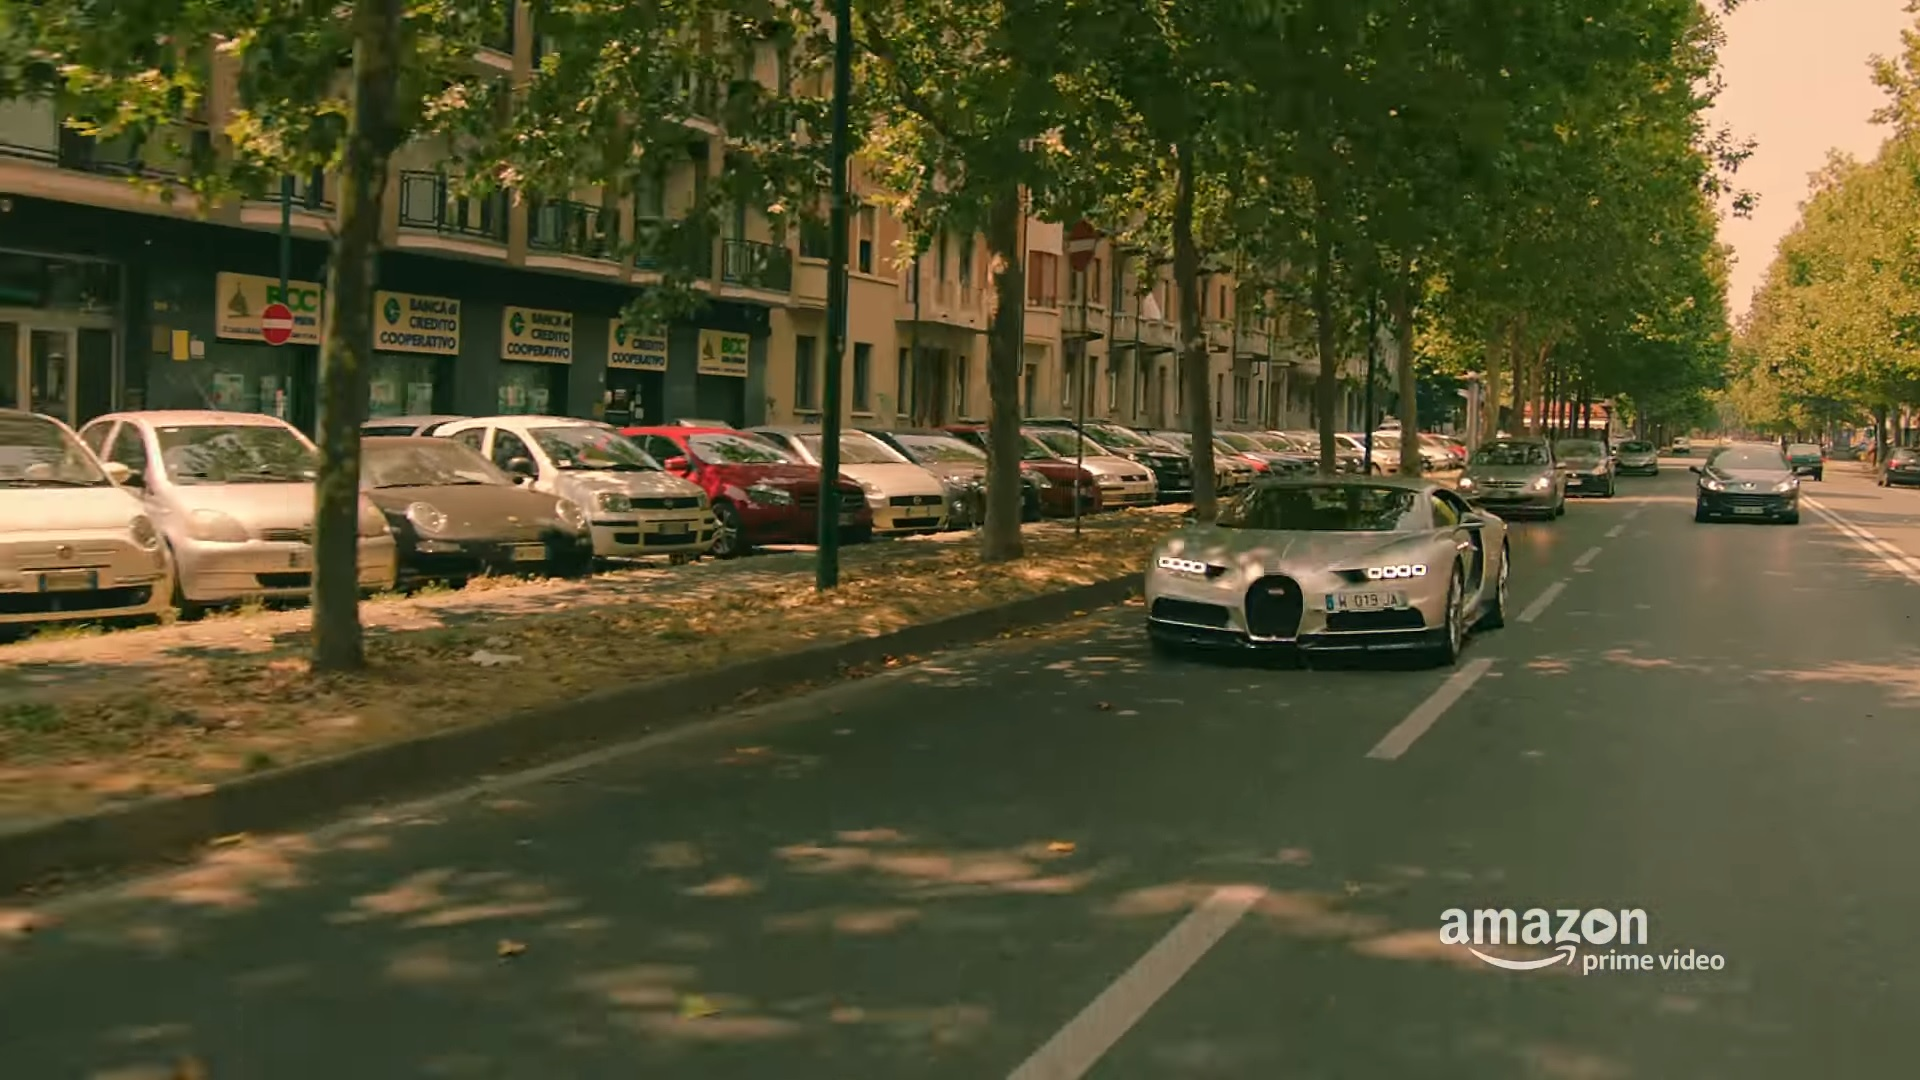 The Grand Tour Teases The Fastest Car In The World Ahead HD Wallpapers Download free images and photos [musssic.tk]